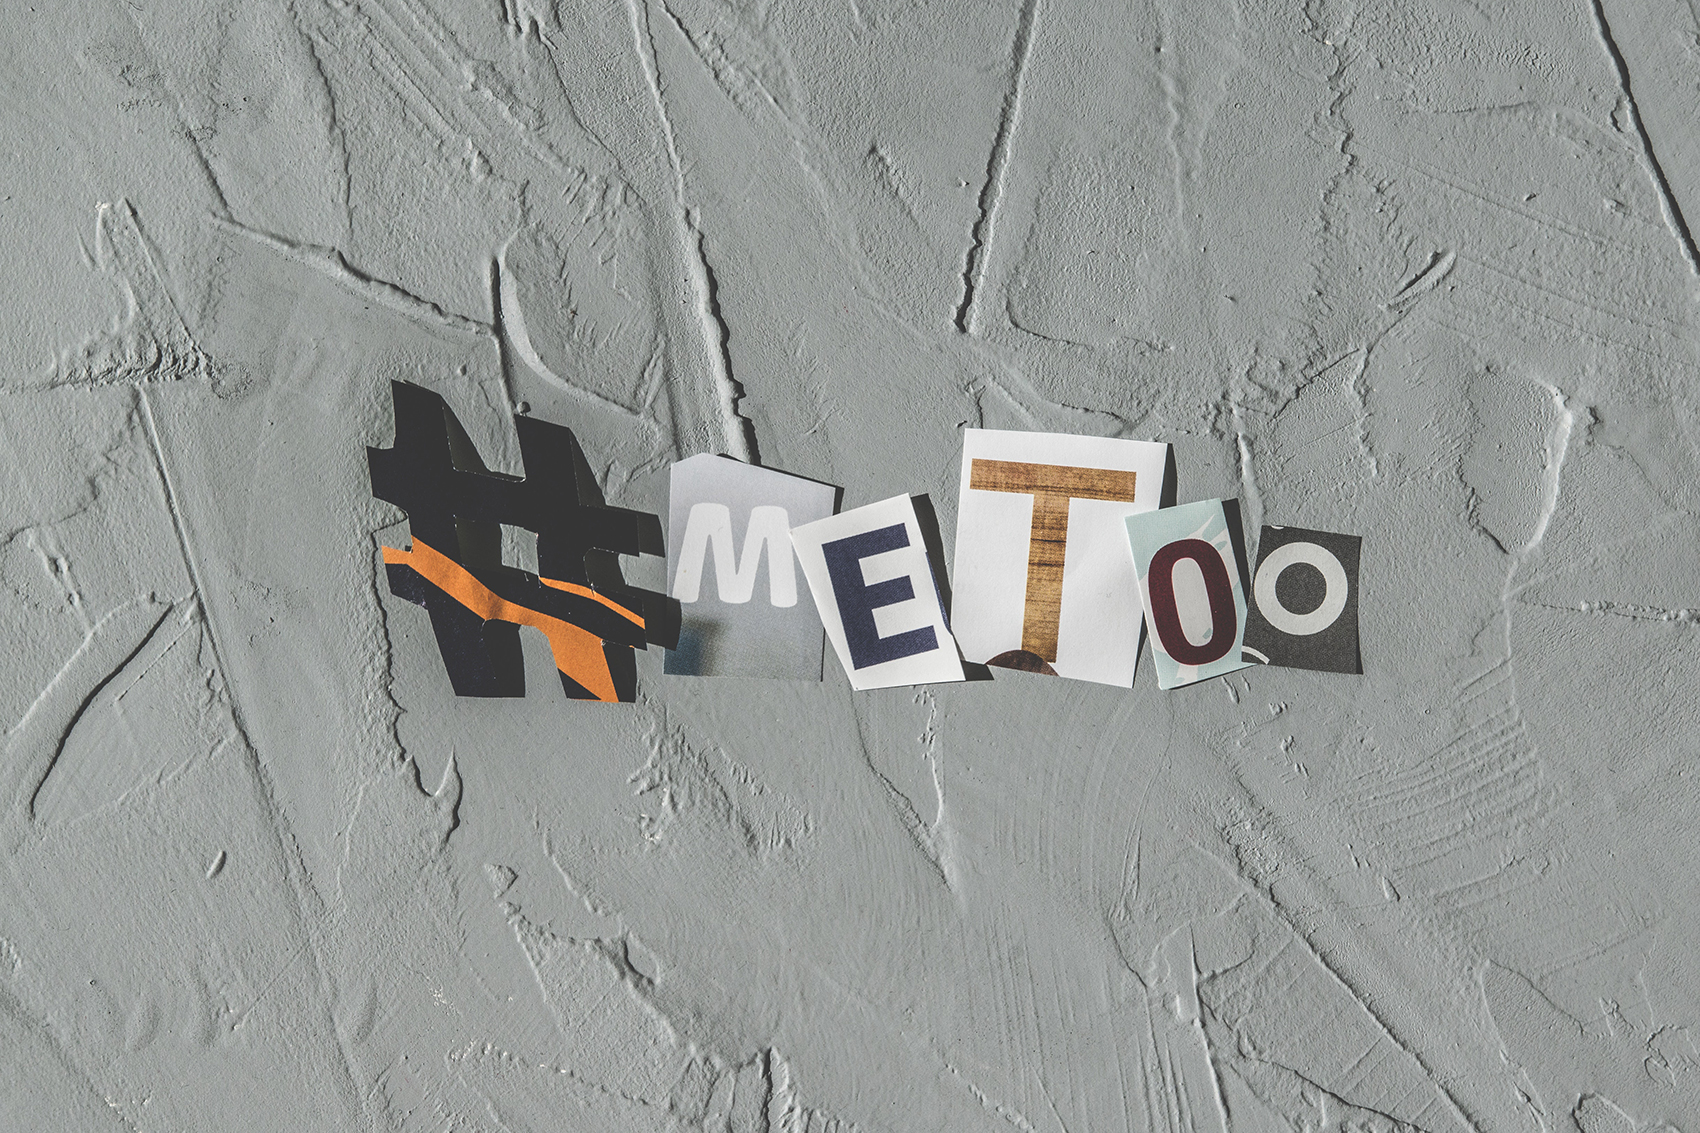 Concerns and viewpoints of #MeToo movement in India